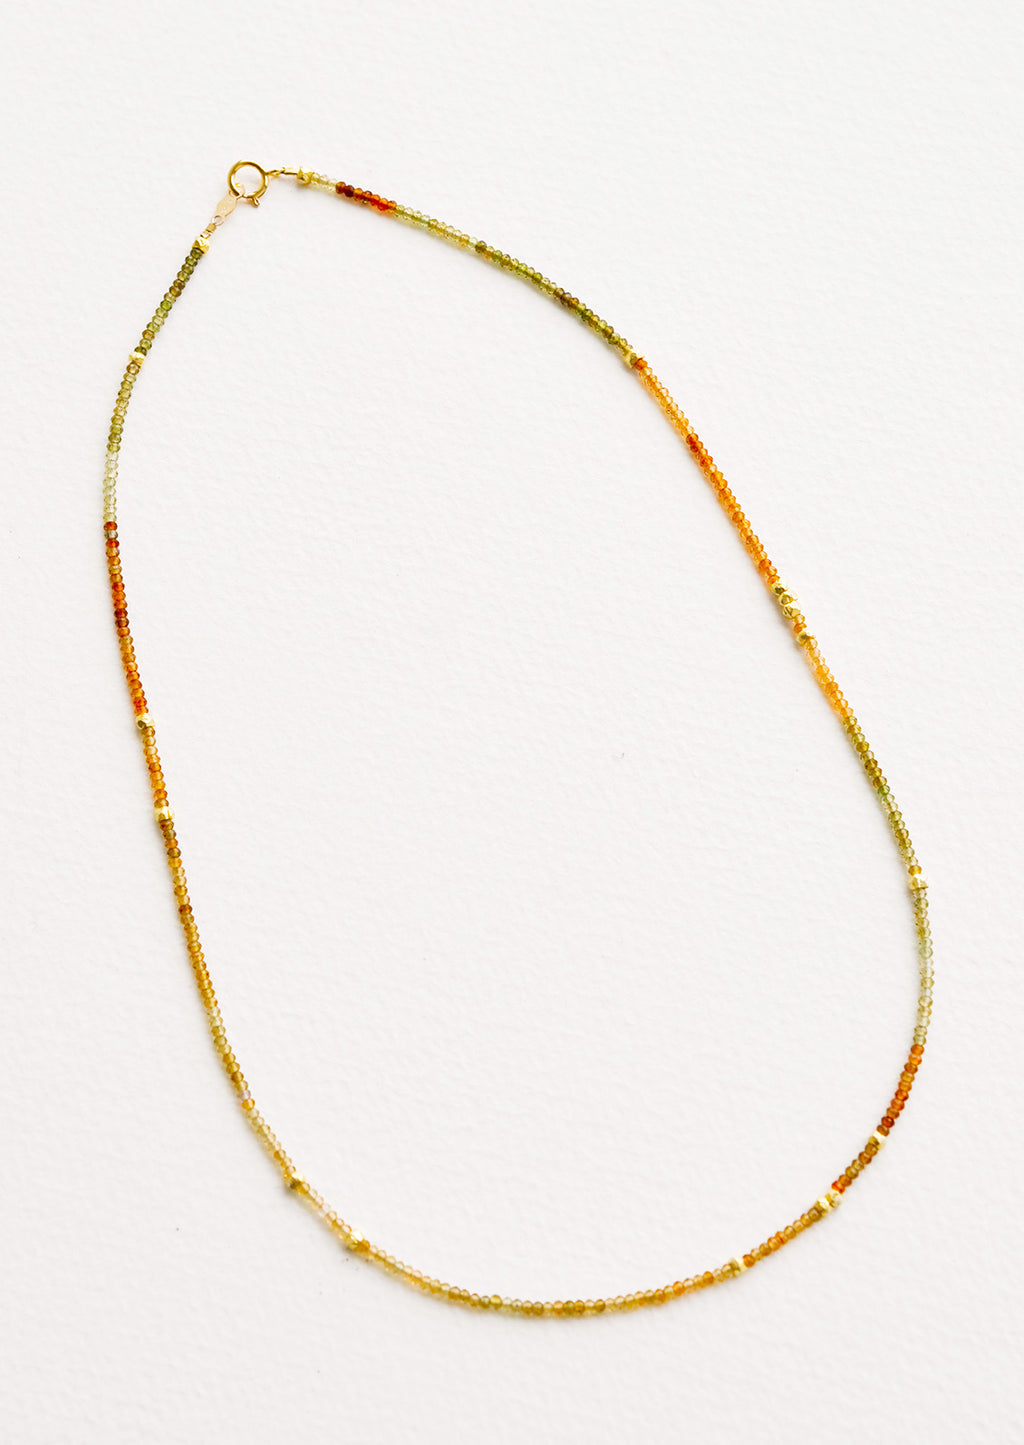 Tourmaline: A necklace of deep amber gemstones, evenly spaced gold beads, and a gold clasp.